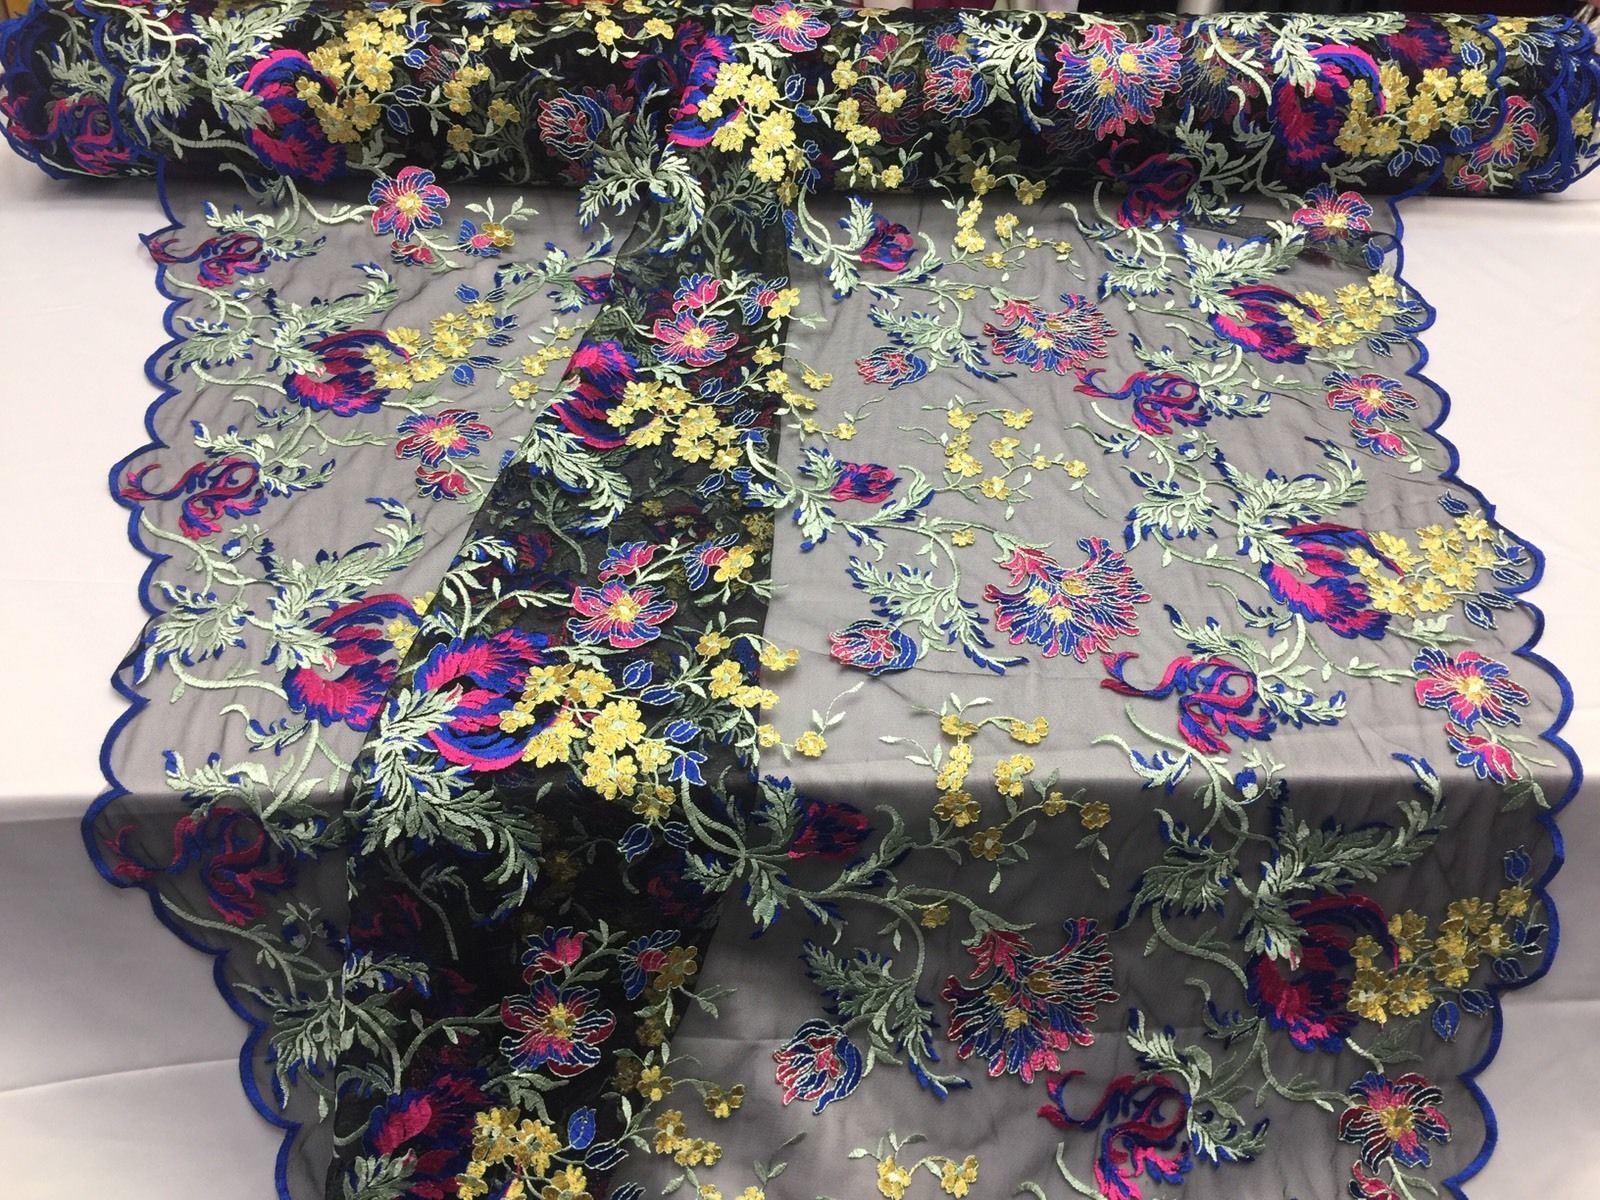 Flower Fabric - Mesh Lace Multi-Color Royal-Fuchsia-Yellow For Dress By The Yard - KINGDOM OF FABRICS